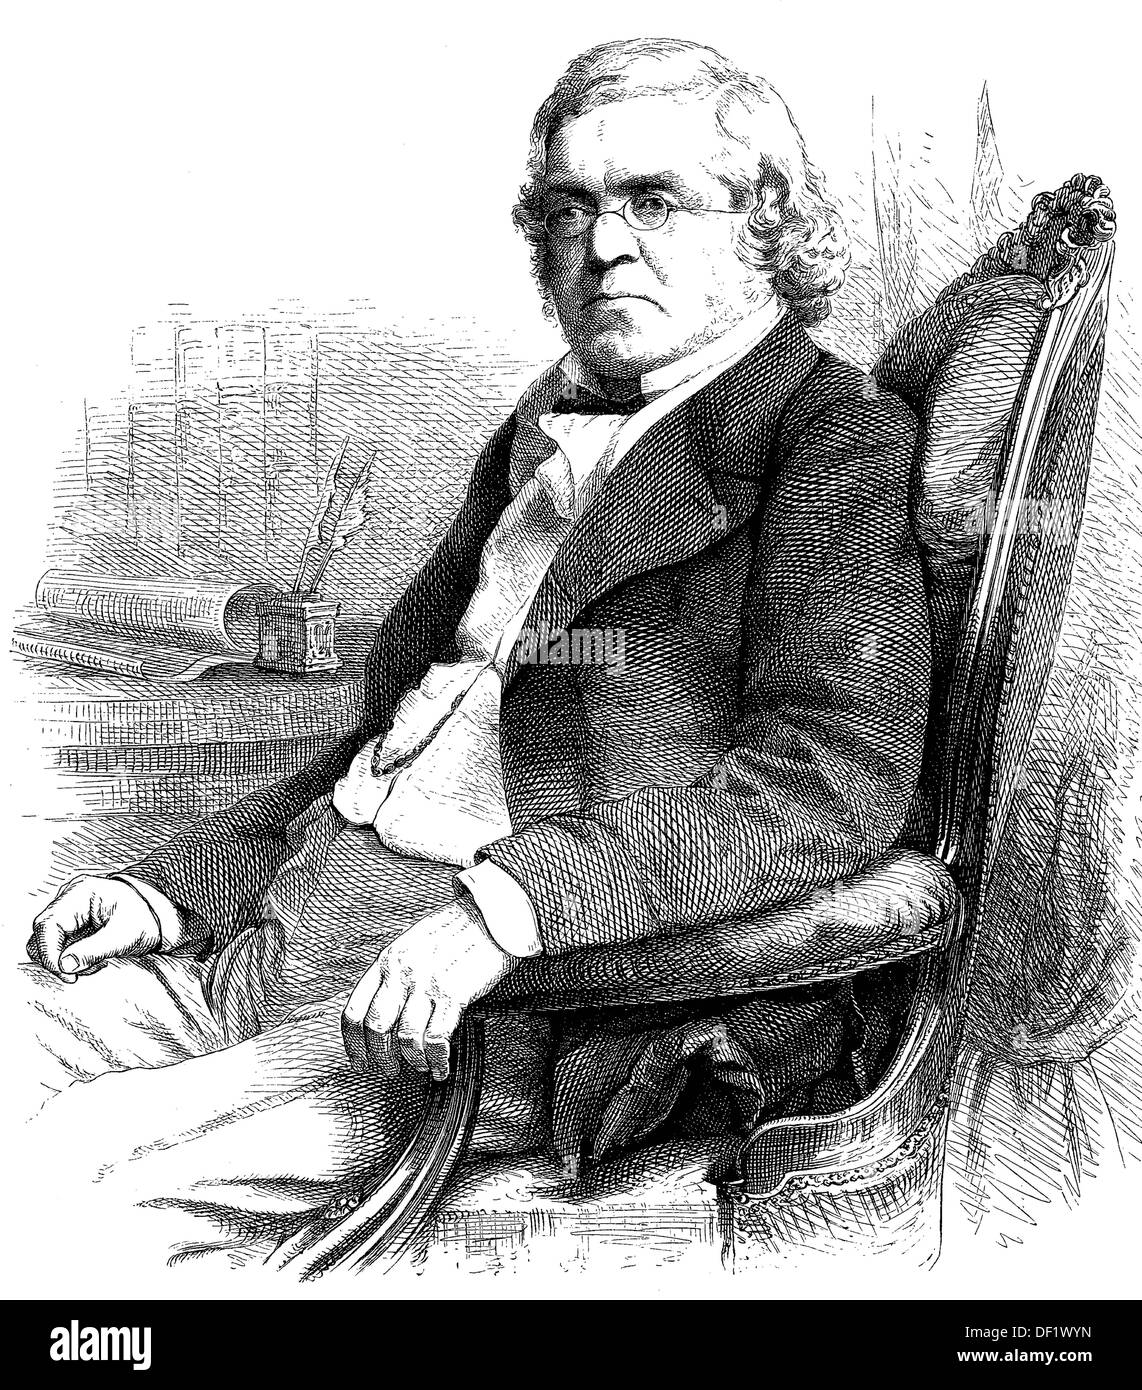 William Makepeace Thackeray, 1811-1863, was an English writer, woodcut from 1864 - Stock Image